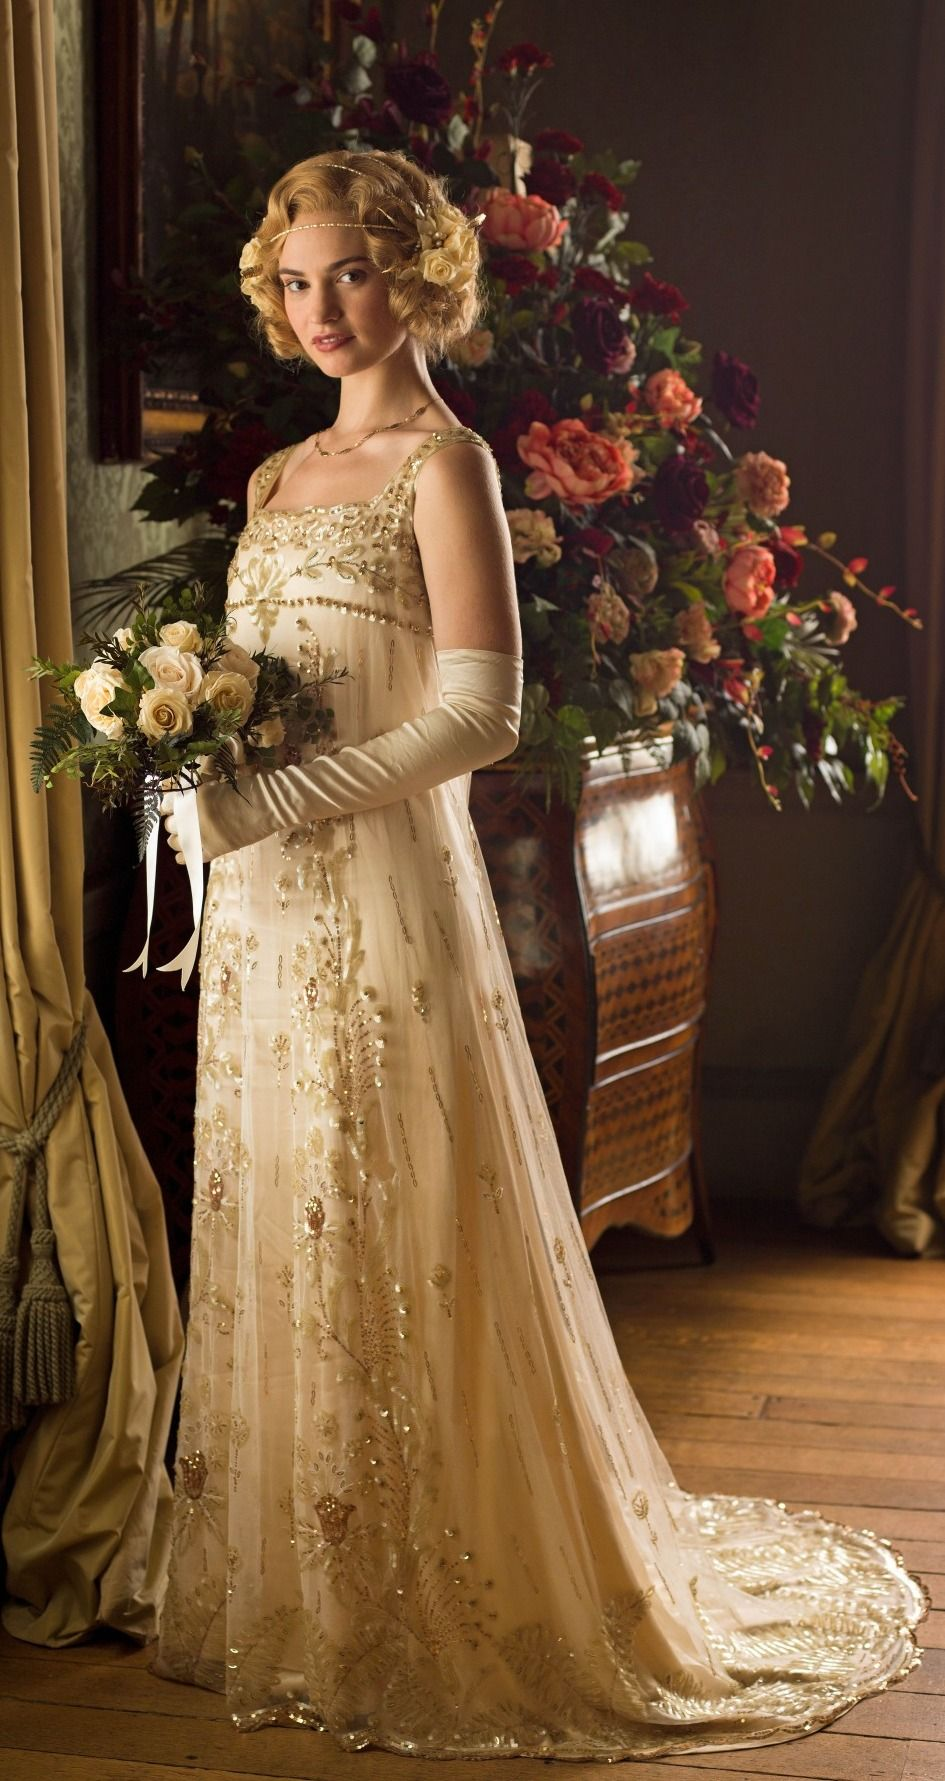 fairy tale wedding dresses Lady Rose wearing her gorgeous wedding dress Downton Abbey Series 5